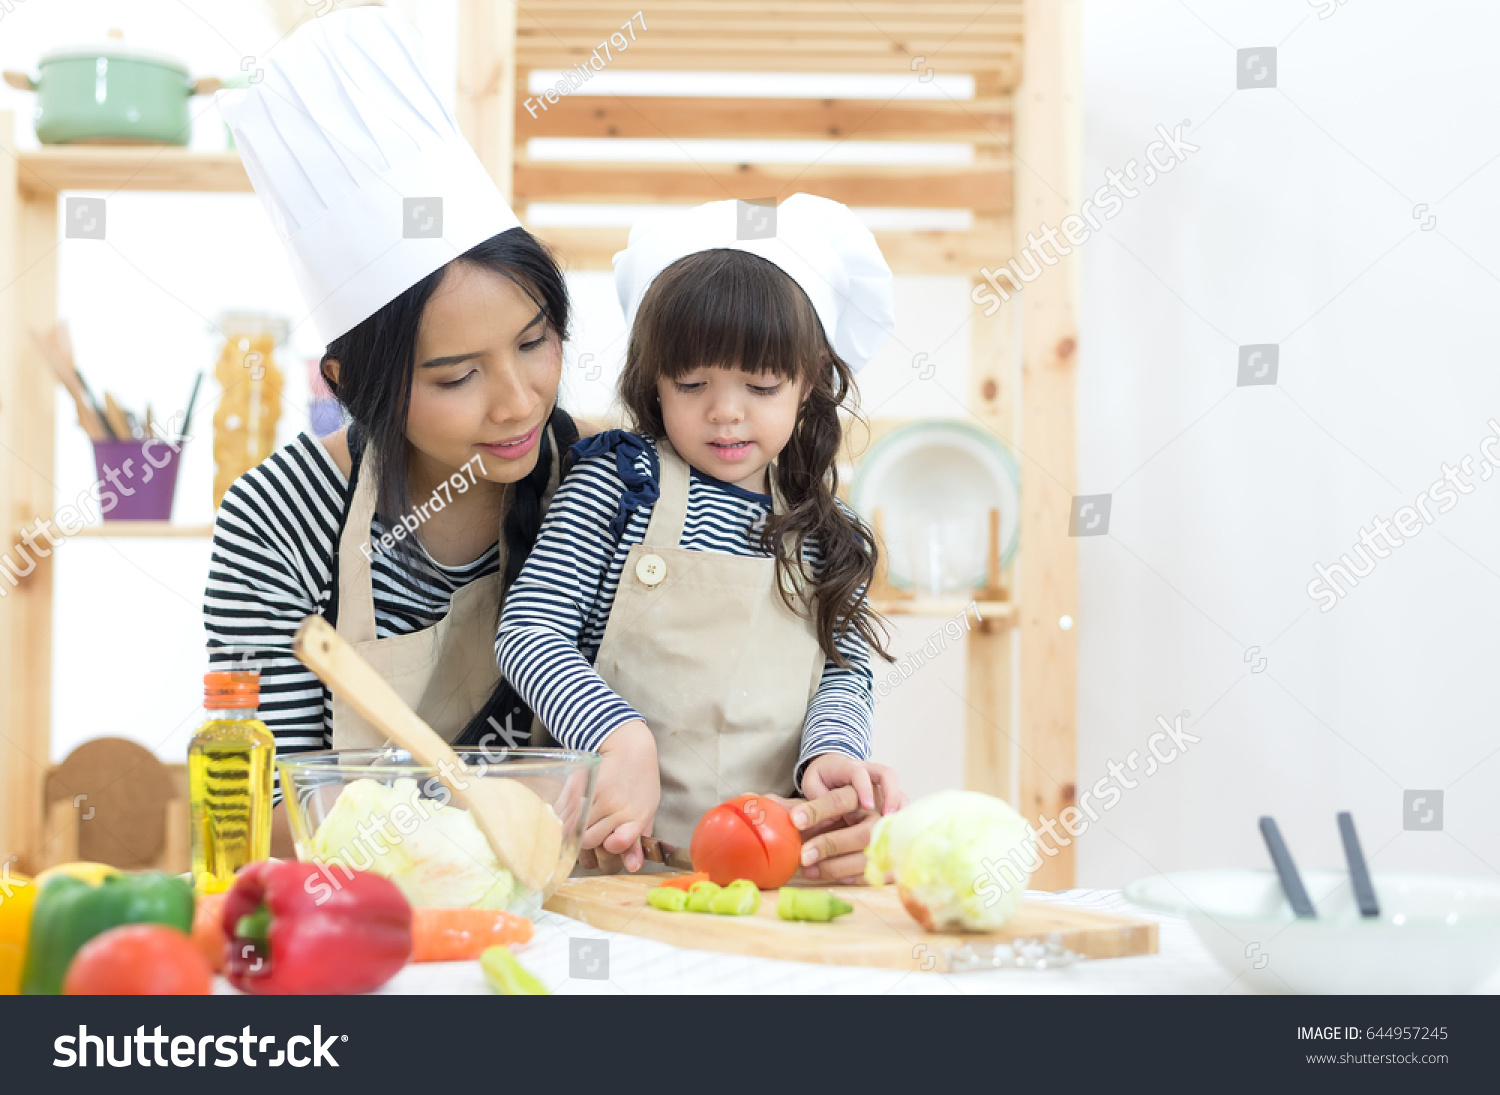 Mom Child Girl Cooking Cutting Vegetables Stock Photo (Royalty Free ...